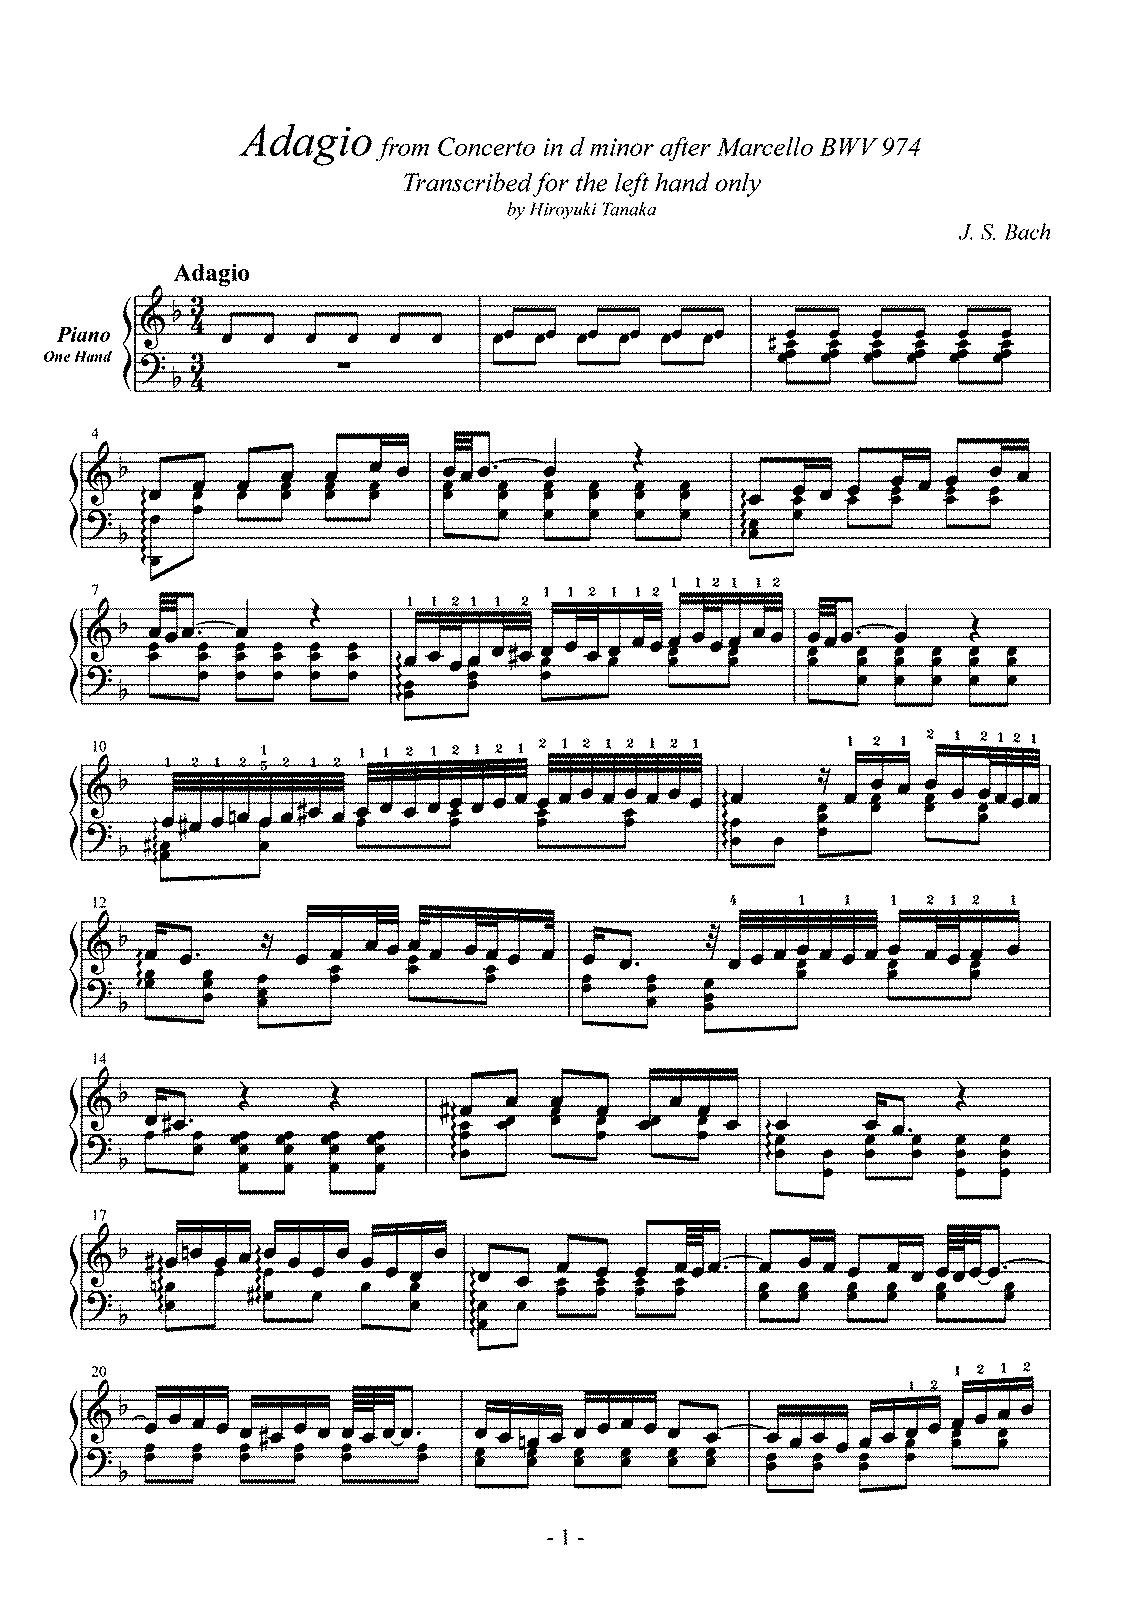 PMLP14345-Adagio from BWV974 for left hand only.pdf